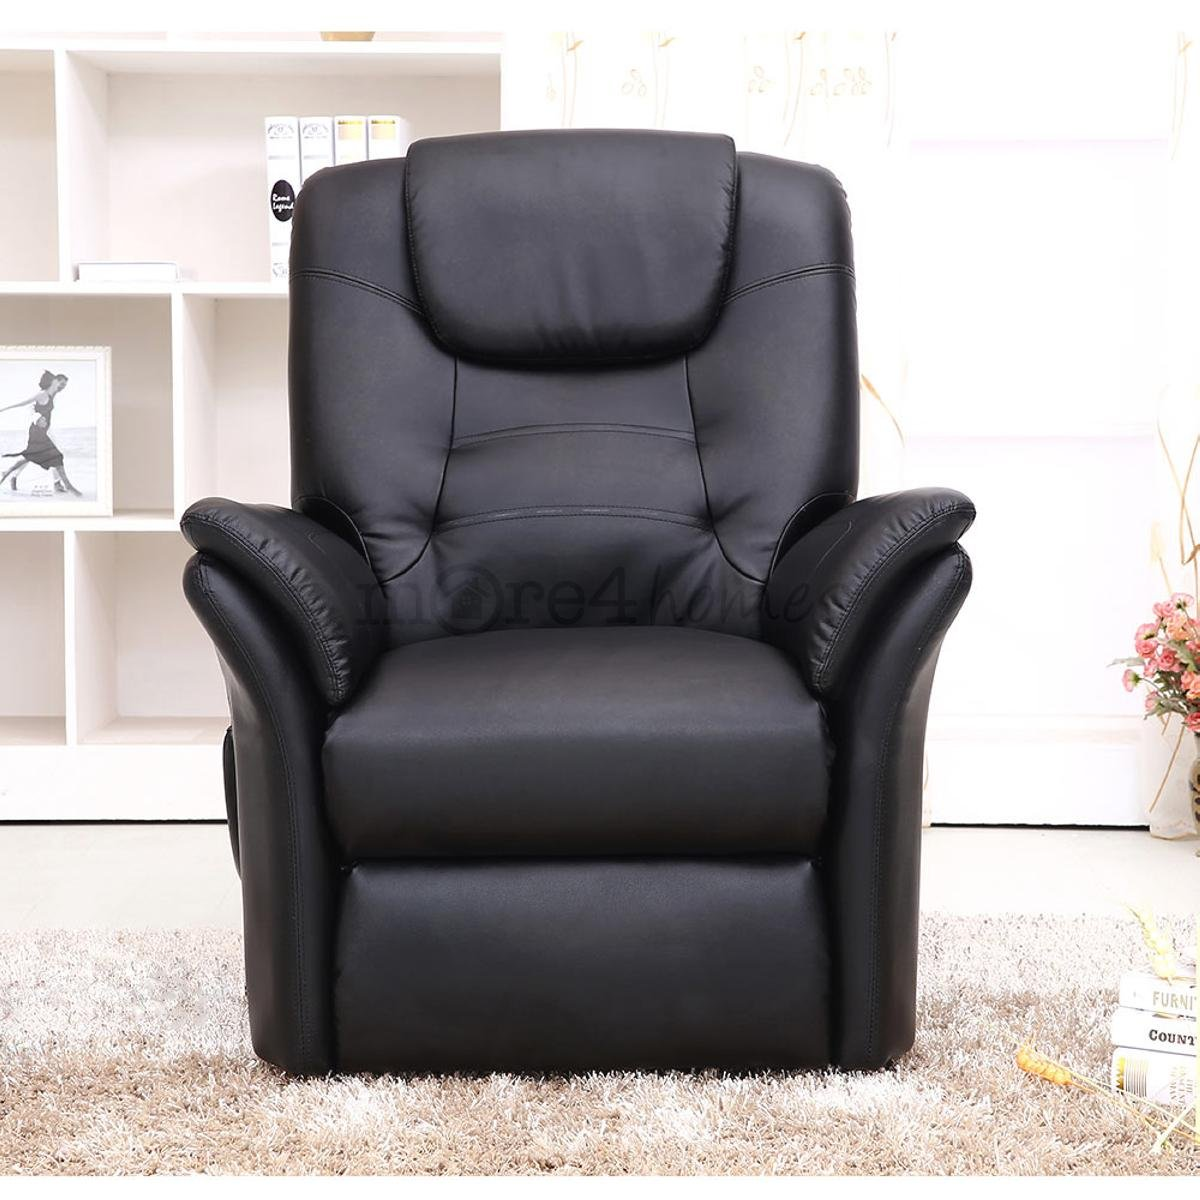 WINDSOR ELECRTIC RISE RECLINER